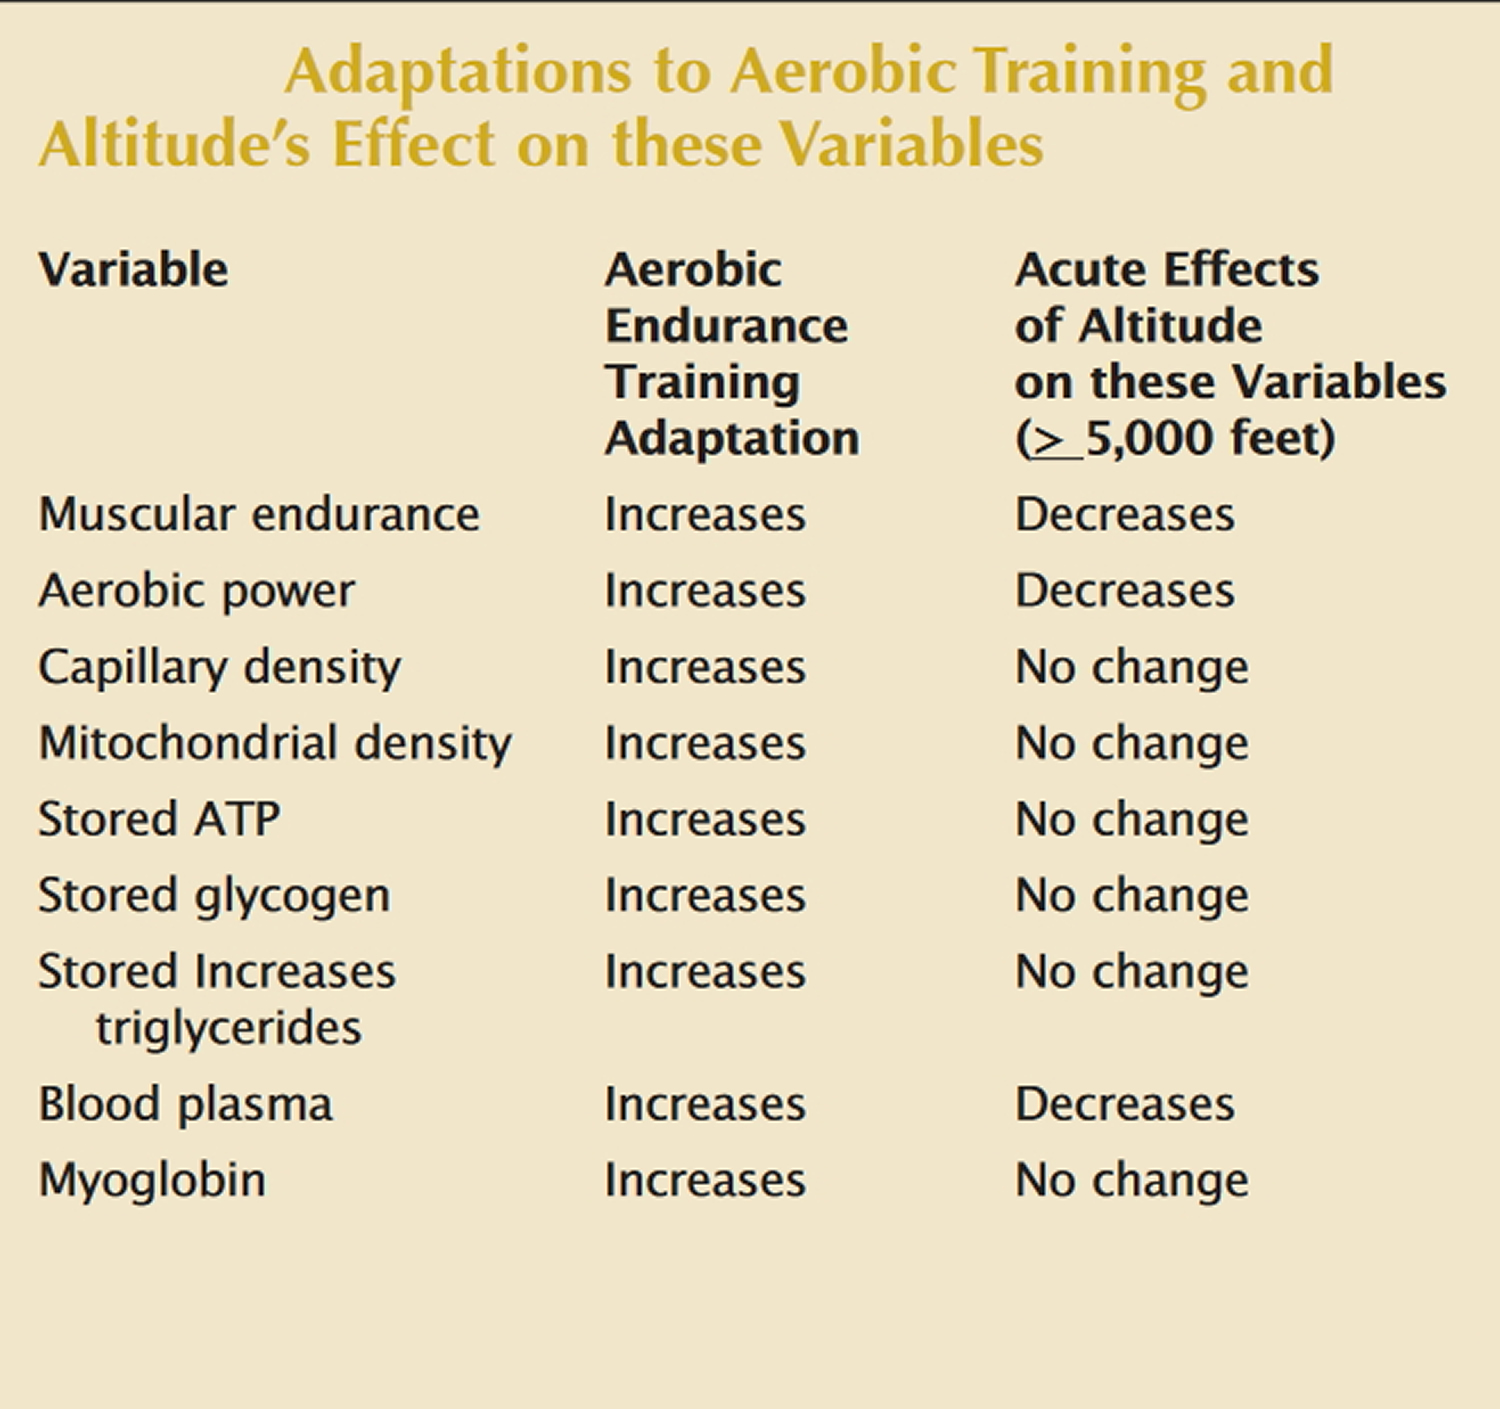 effect of altitude on aerobic training